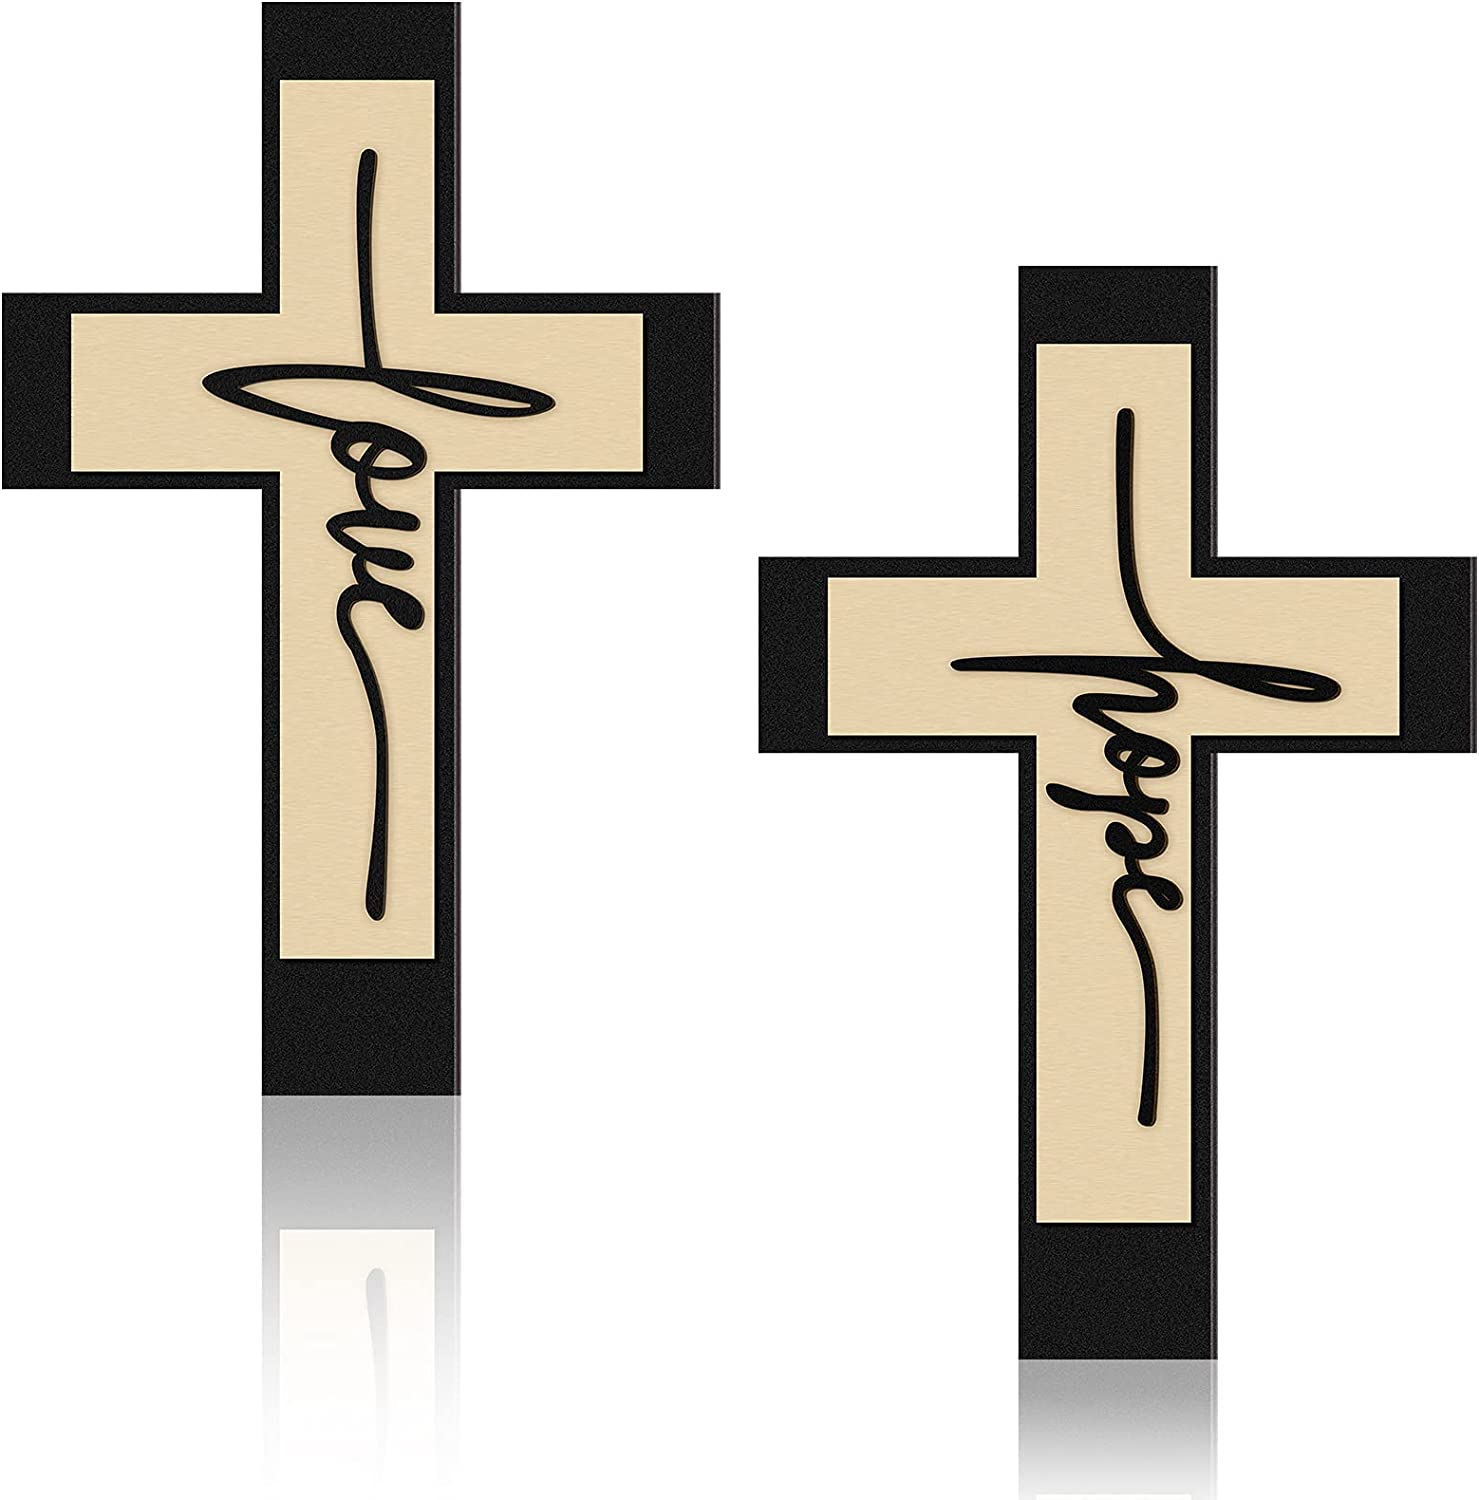 Jetec 2 Pieces Wooden Hanging Wall Cross Wall Cross Love Decor, Large Decorative Love and Home Wall Art Cross Wood Home Hanging Decor for Home Room Garden Yard Supplies, 16 x 10 Inch